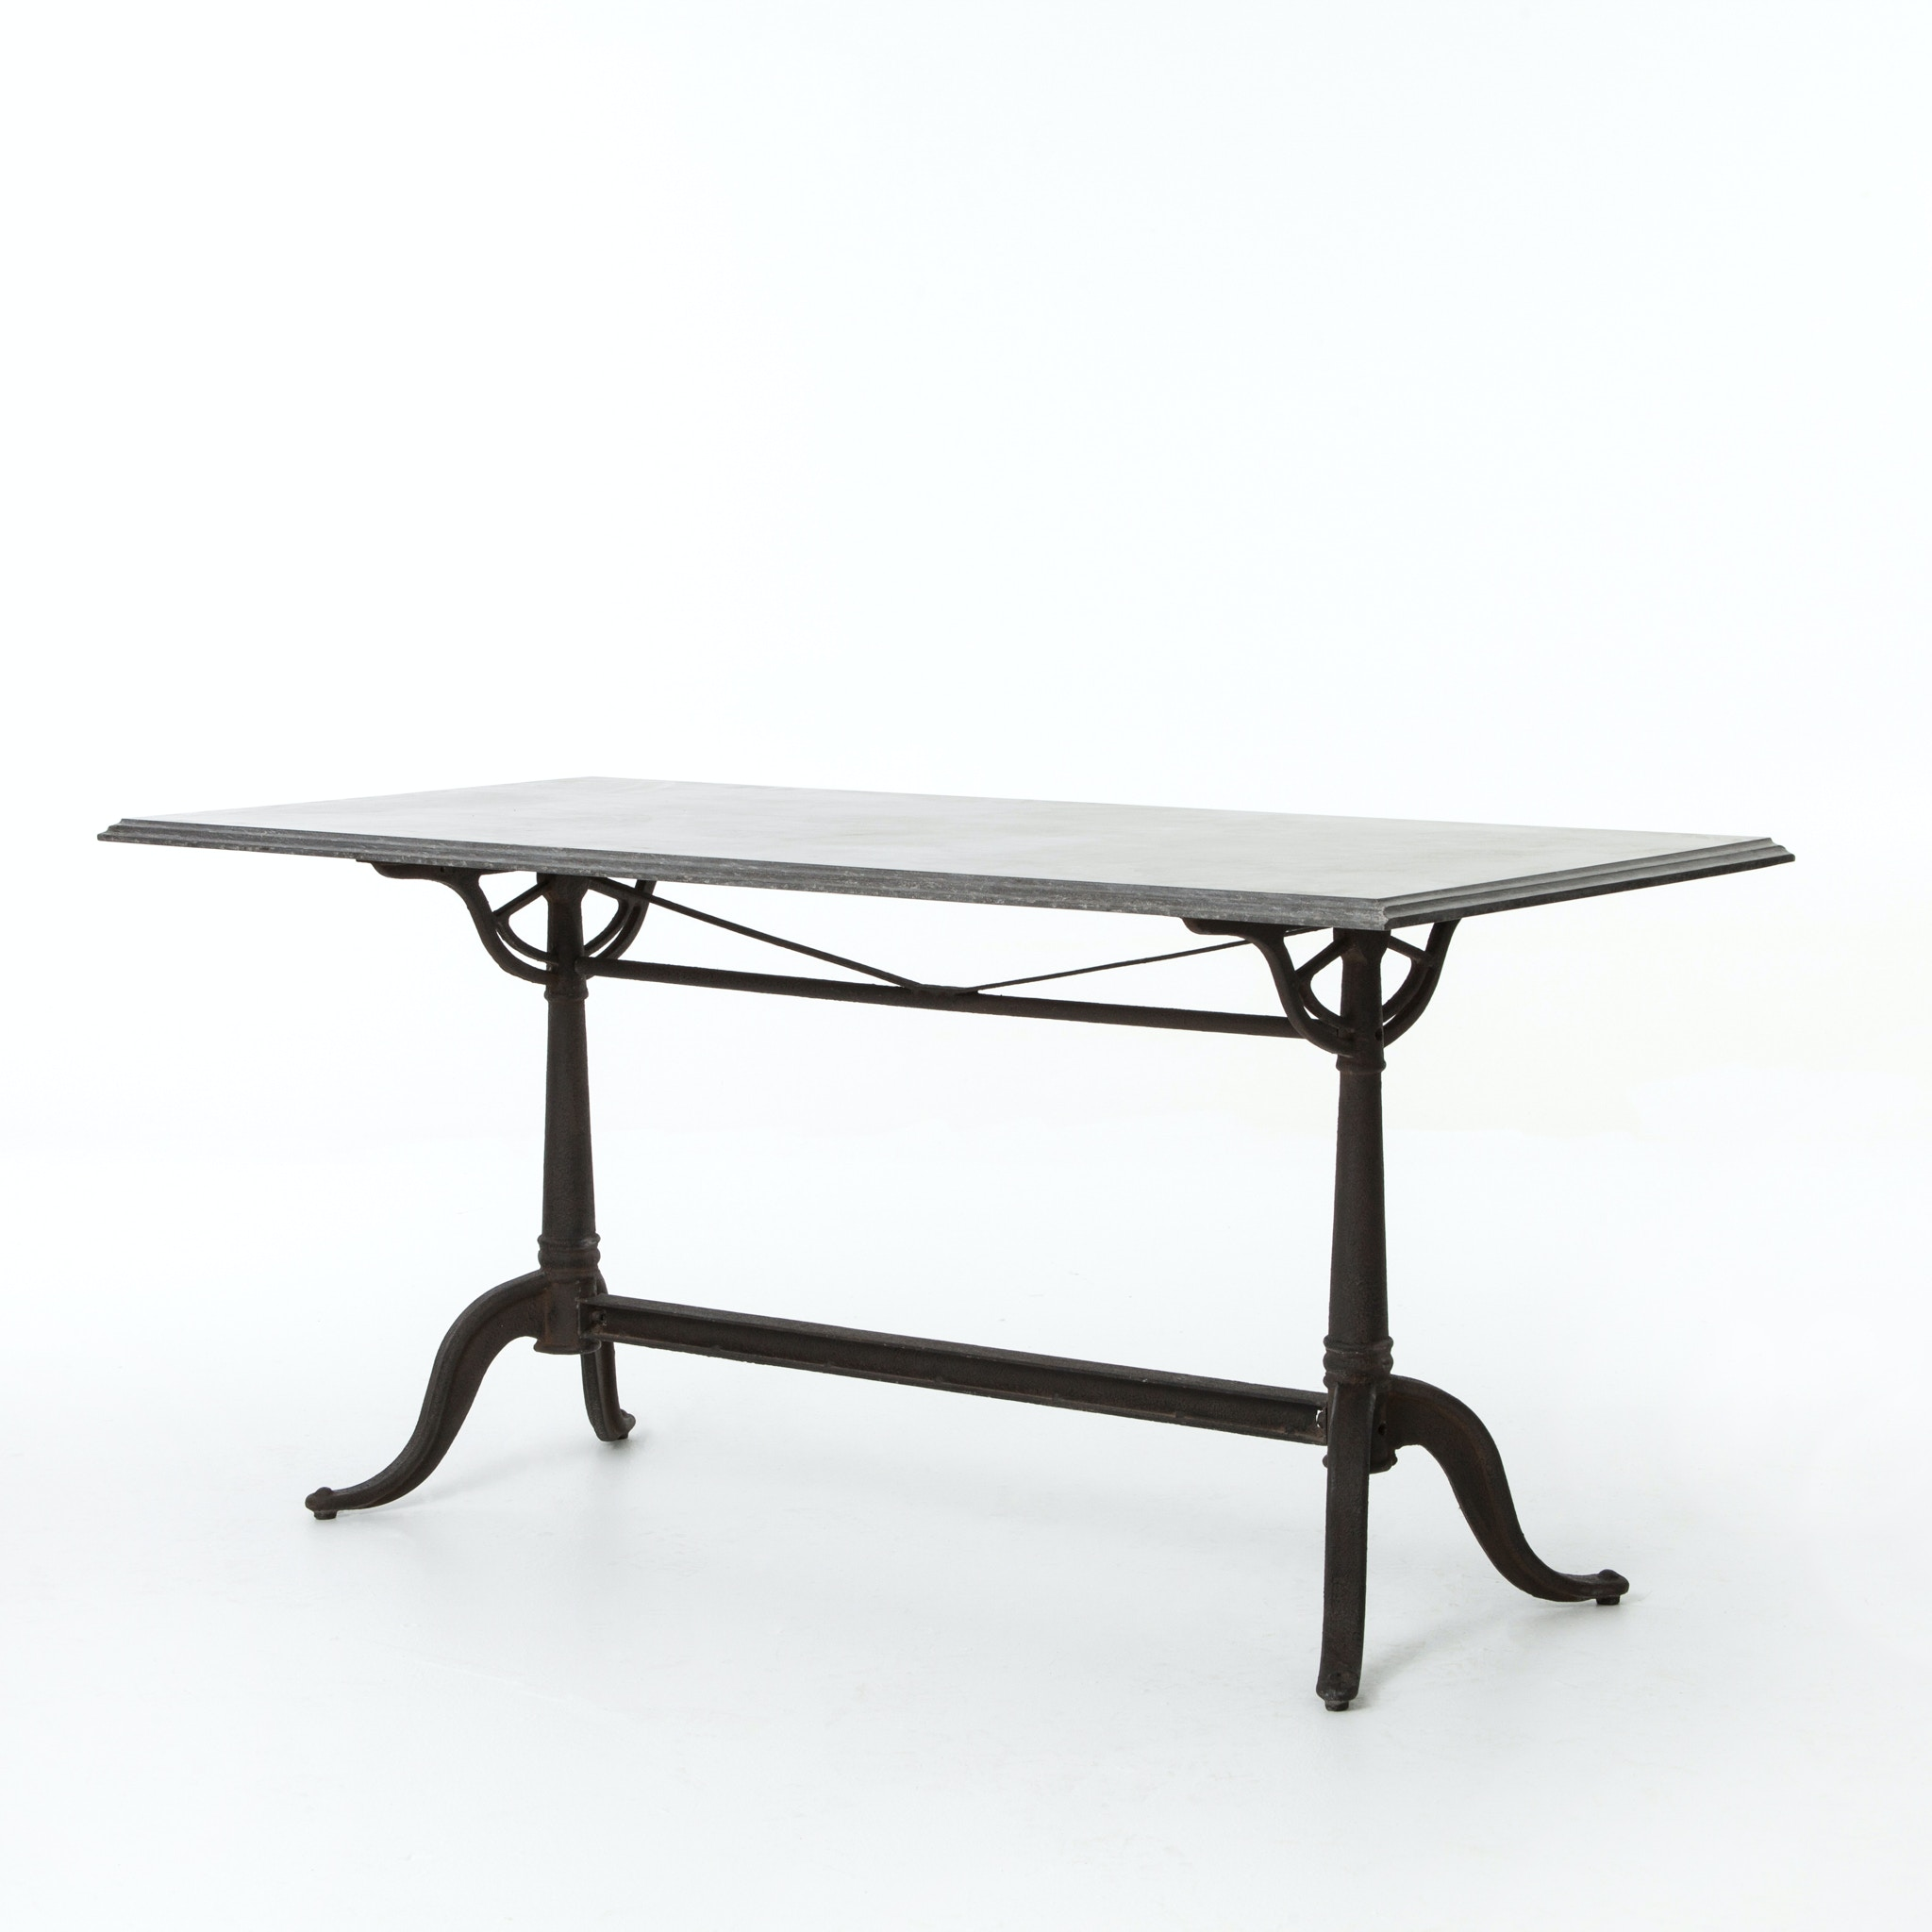 Four Hands Furniture Parisian Dining Table Bluestone CIMP 4K